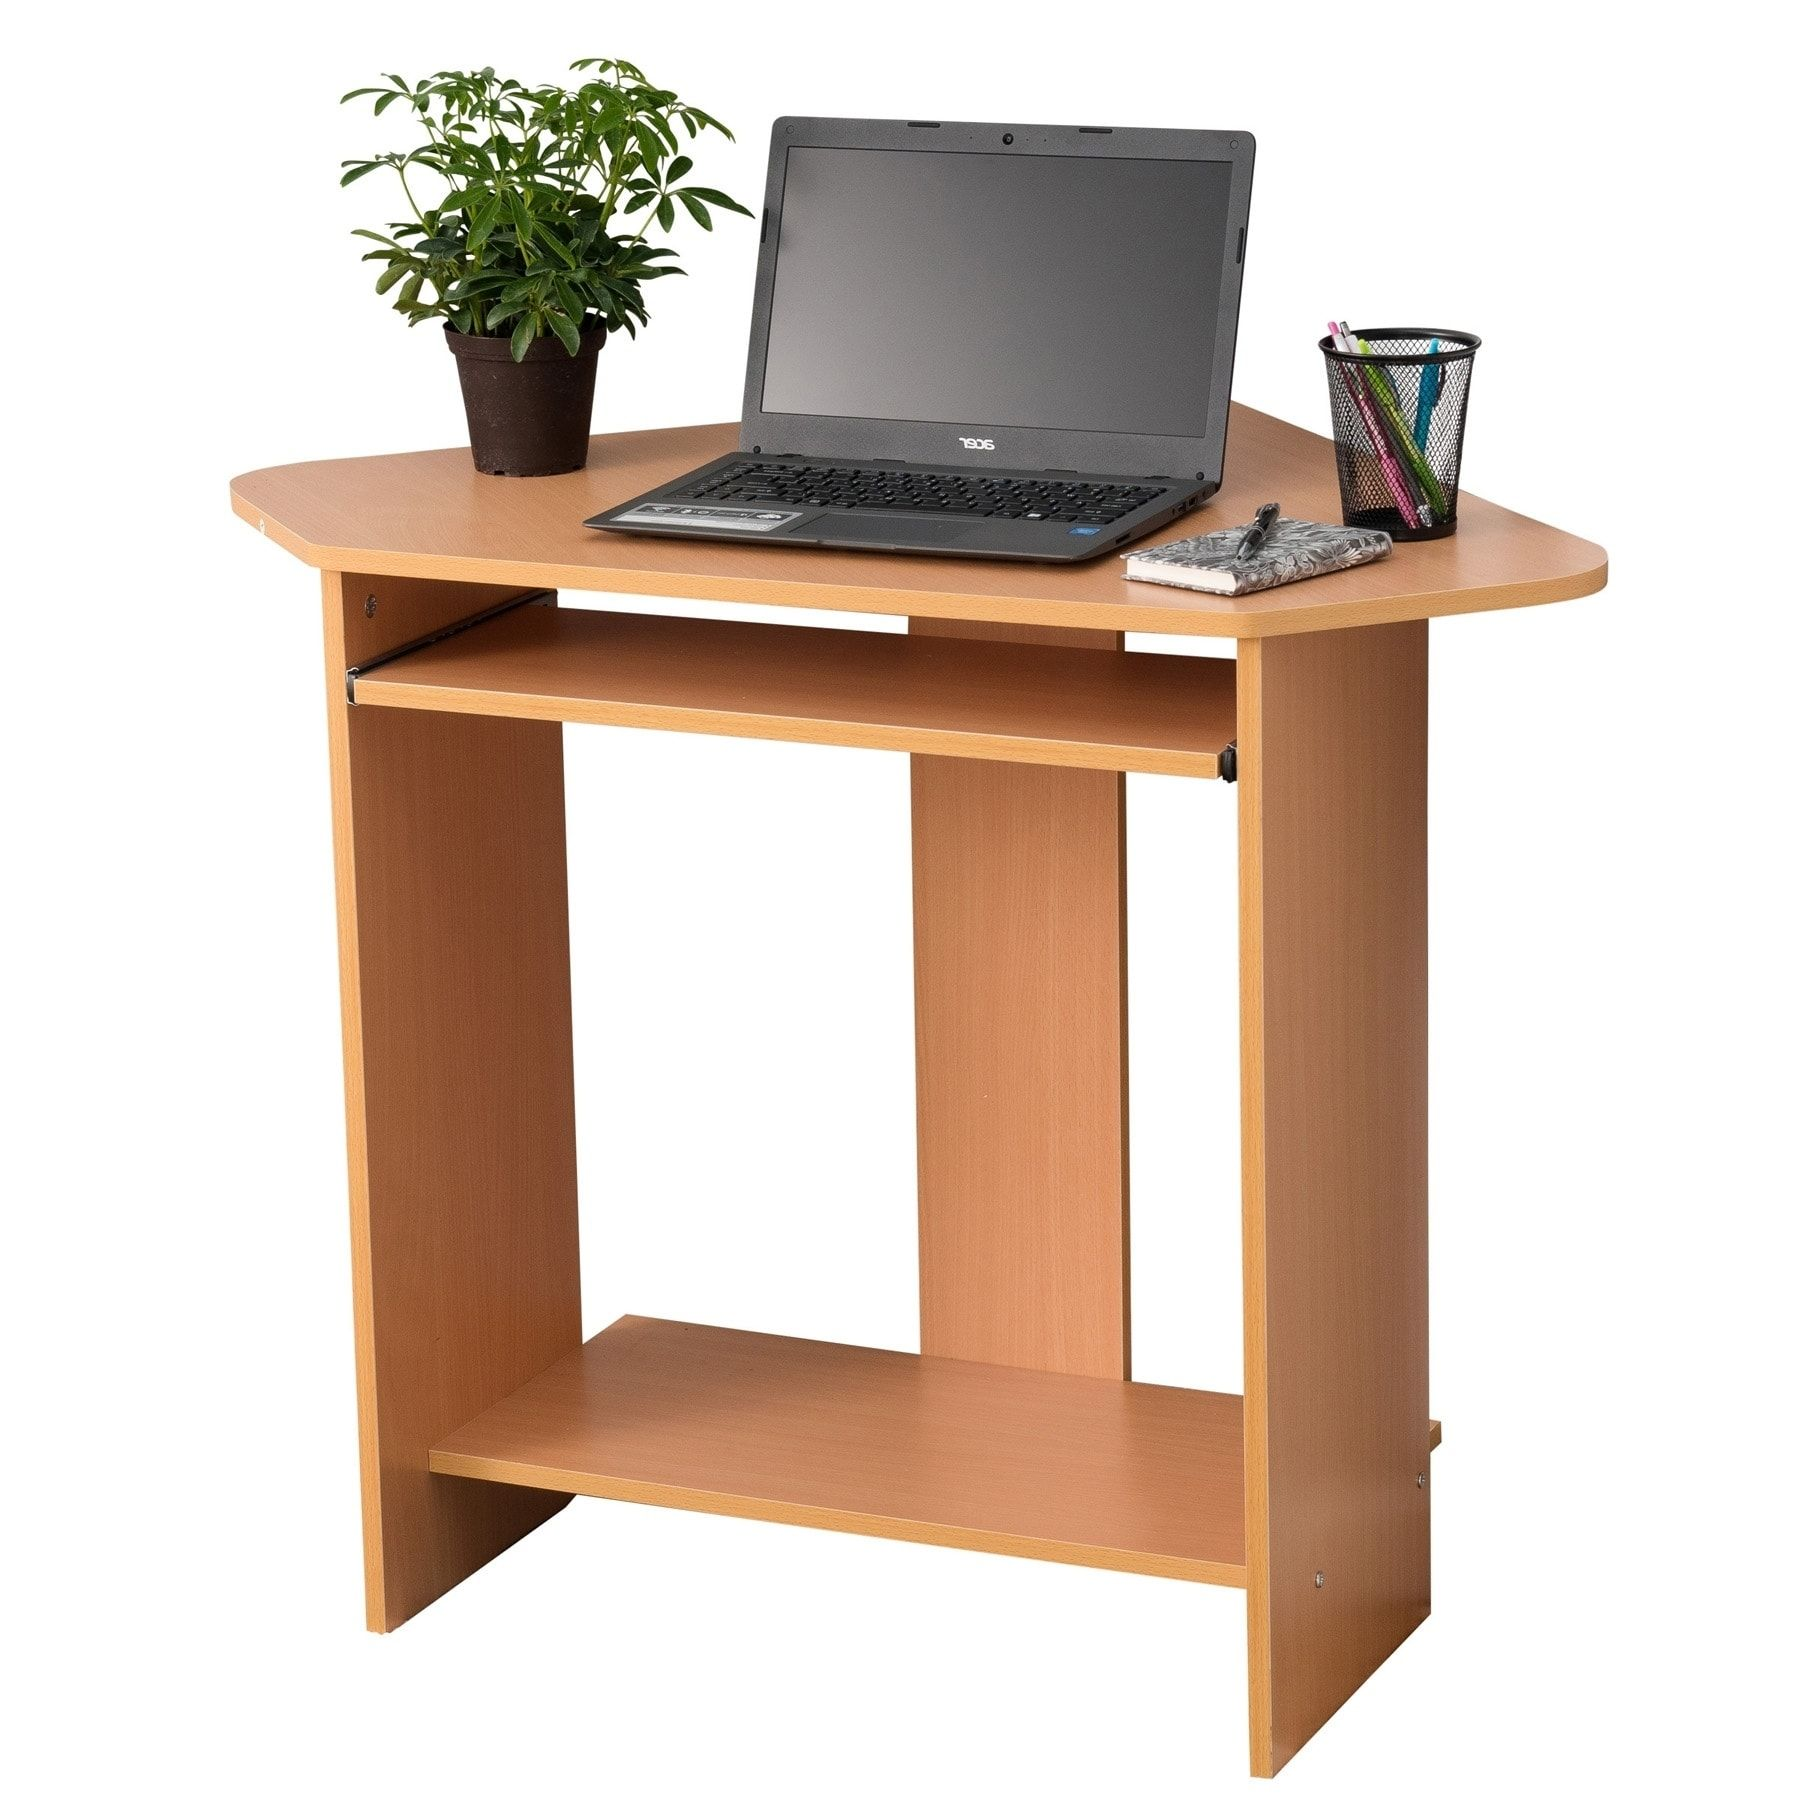 Fineboard home office compact corner desk red walnut brown